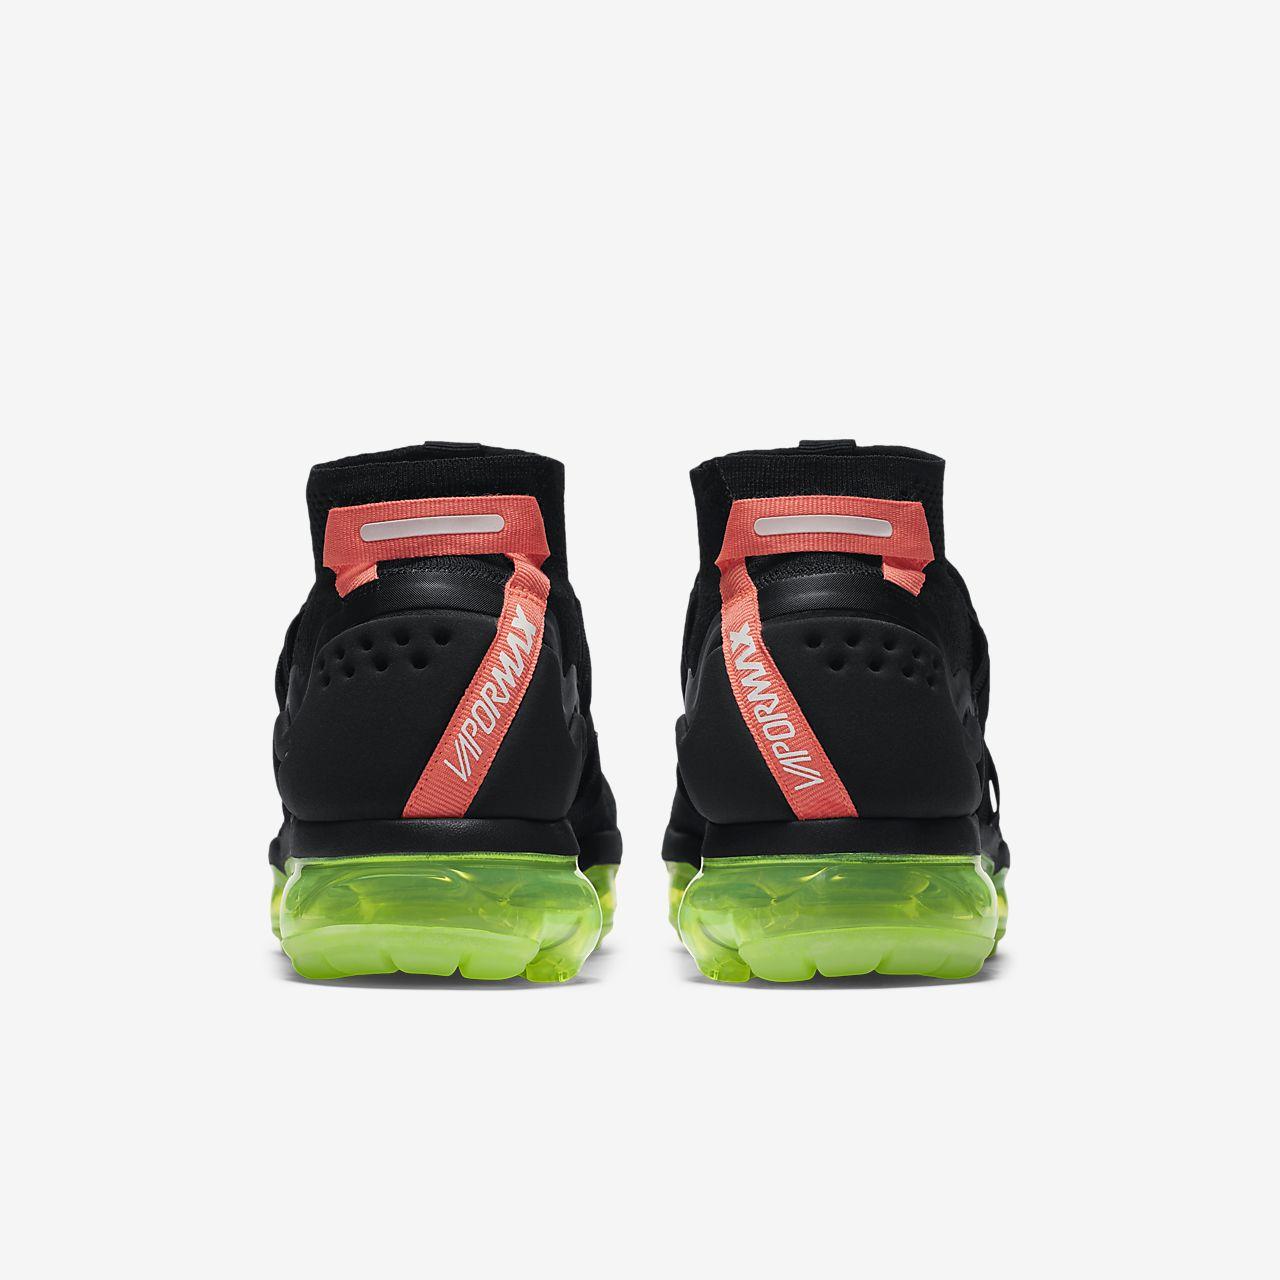 new concept 03039 166f1 ... Nike Air VaporMax Flyknit Utility Shoe